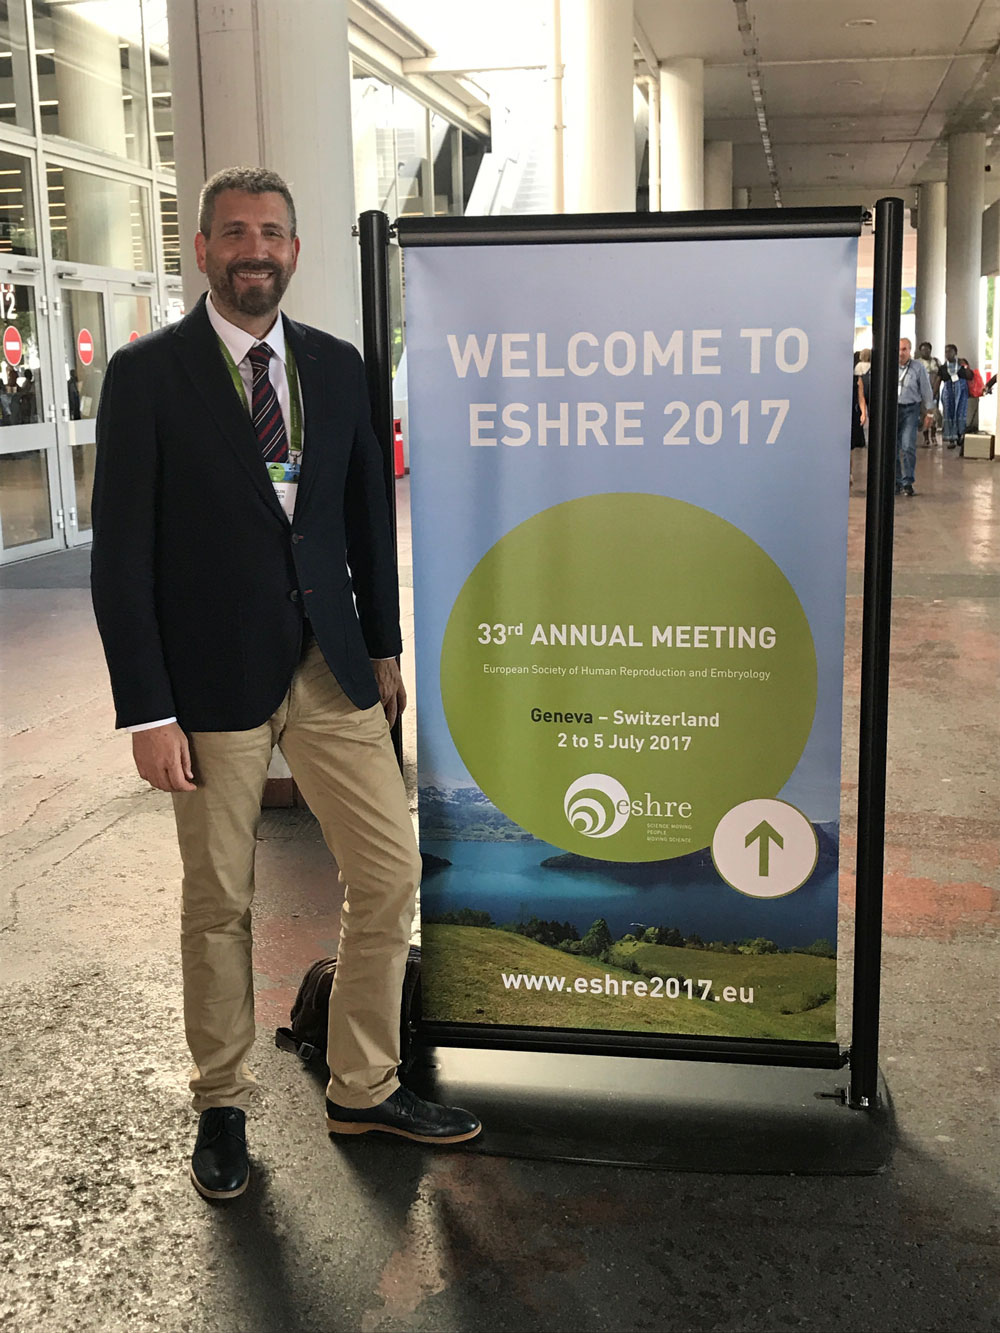 Doktor Joaquín Llácer er valgt som representant for spanske leger i European Society of Human Reproduction and Embryology (ESHRE) frem til 2020